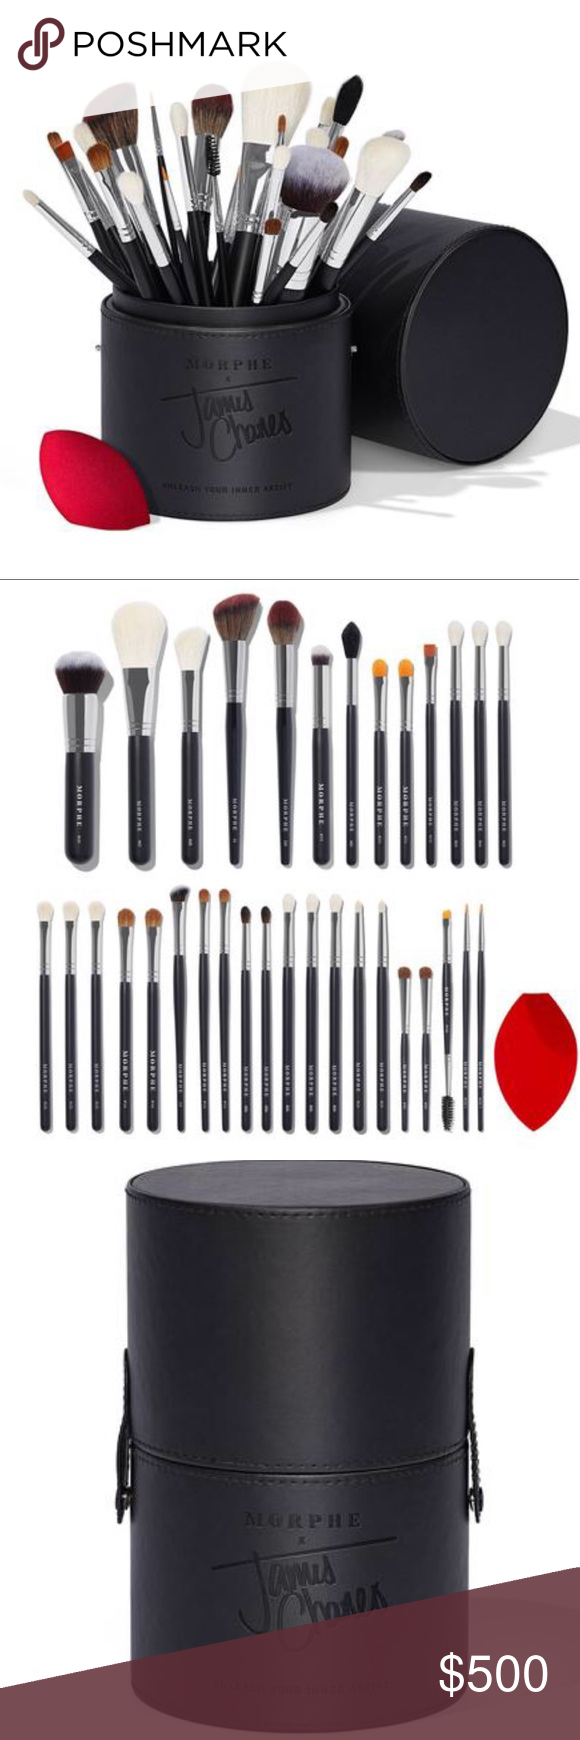 Morphe X James Charles Brush Set NIB AUTHENTIC SOLD OUT